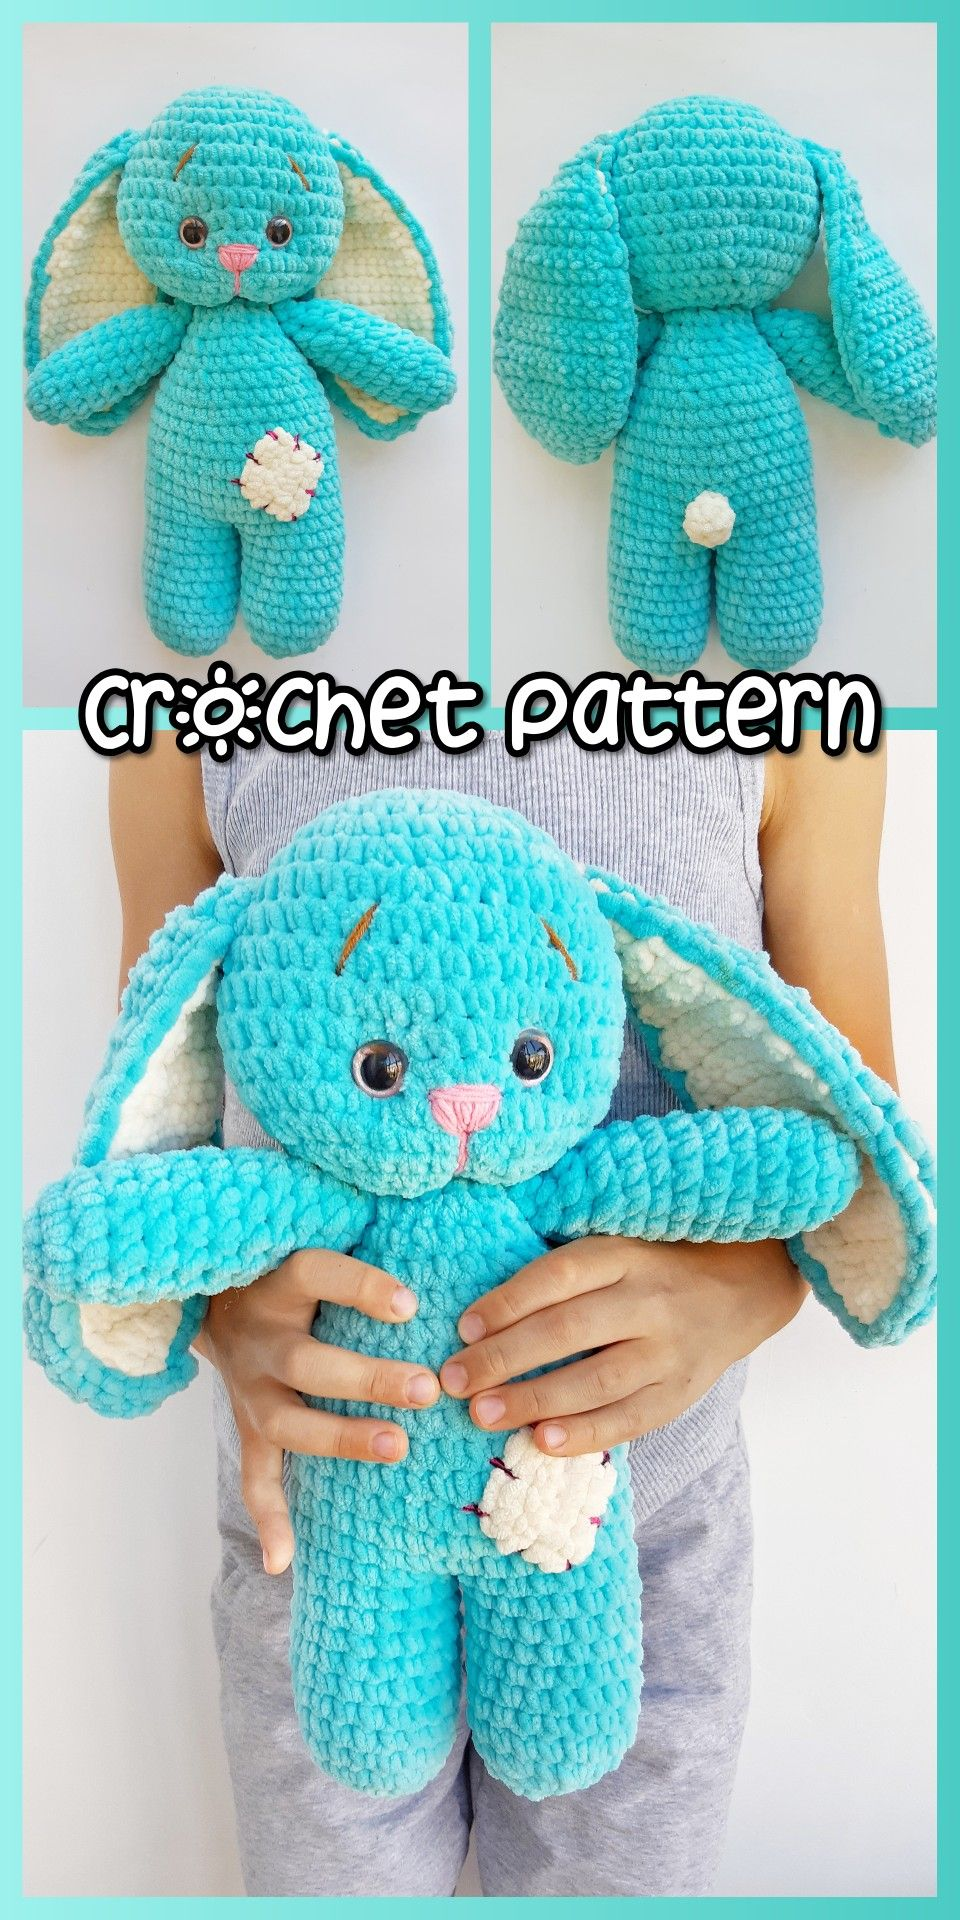 BUNNY RABBIT | HOW TO CROCHET | AMIGURUMI TUTORIAL - YouTube | 1920x960